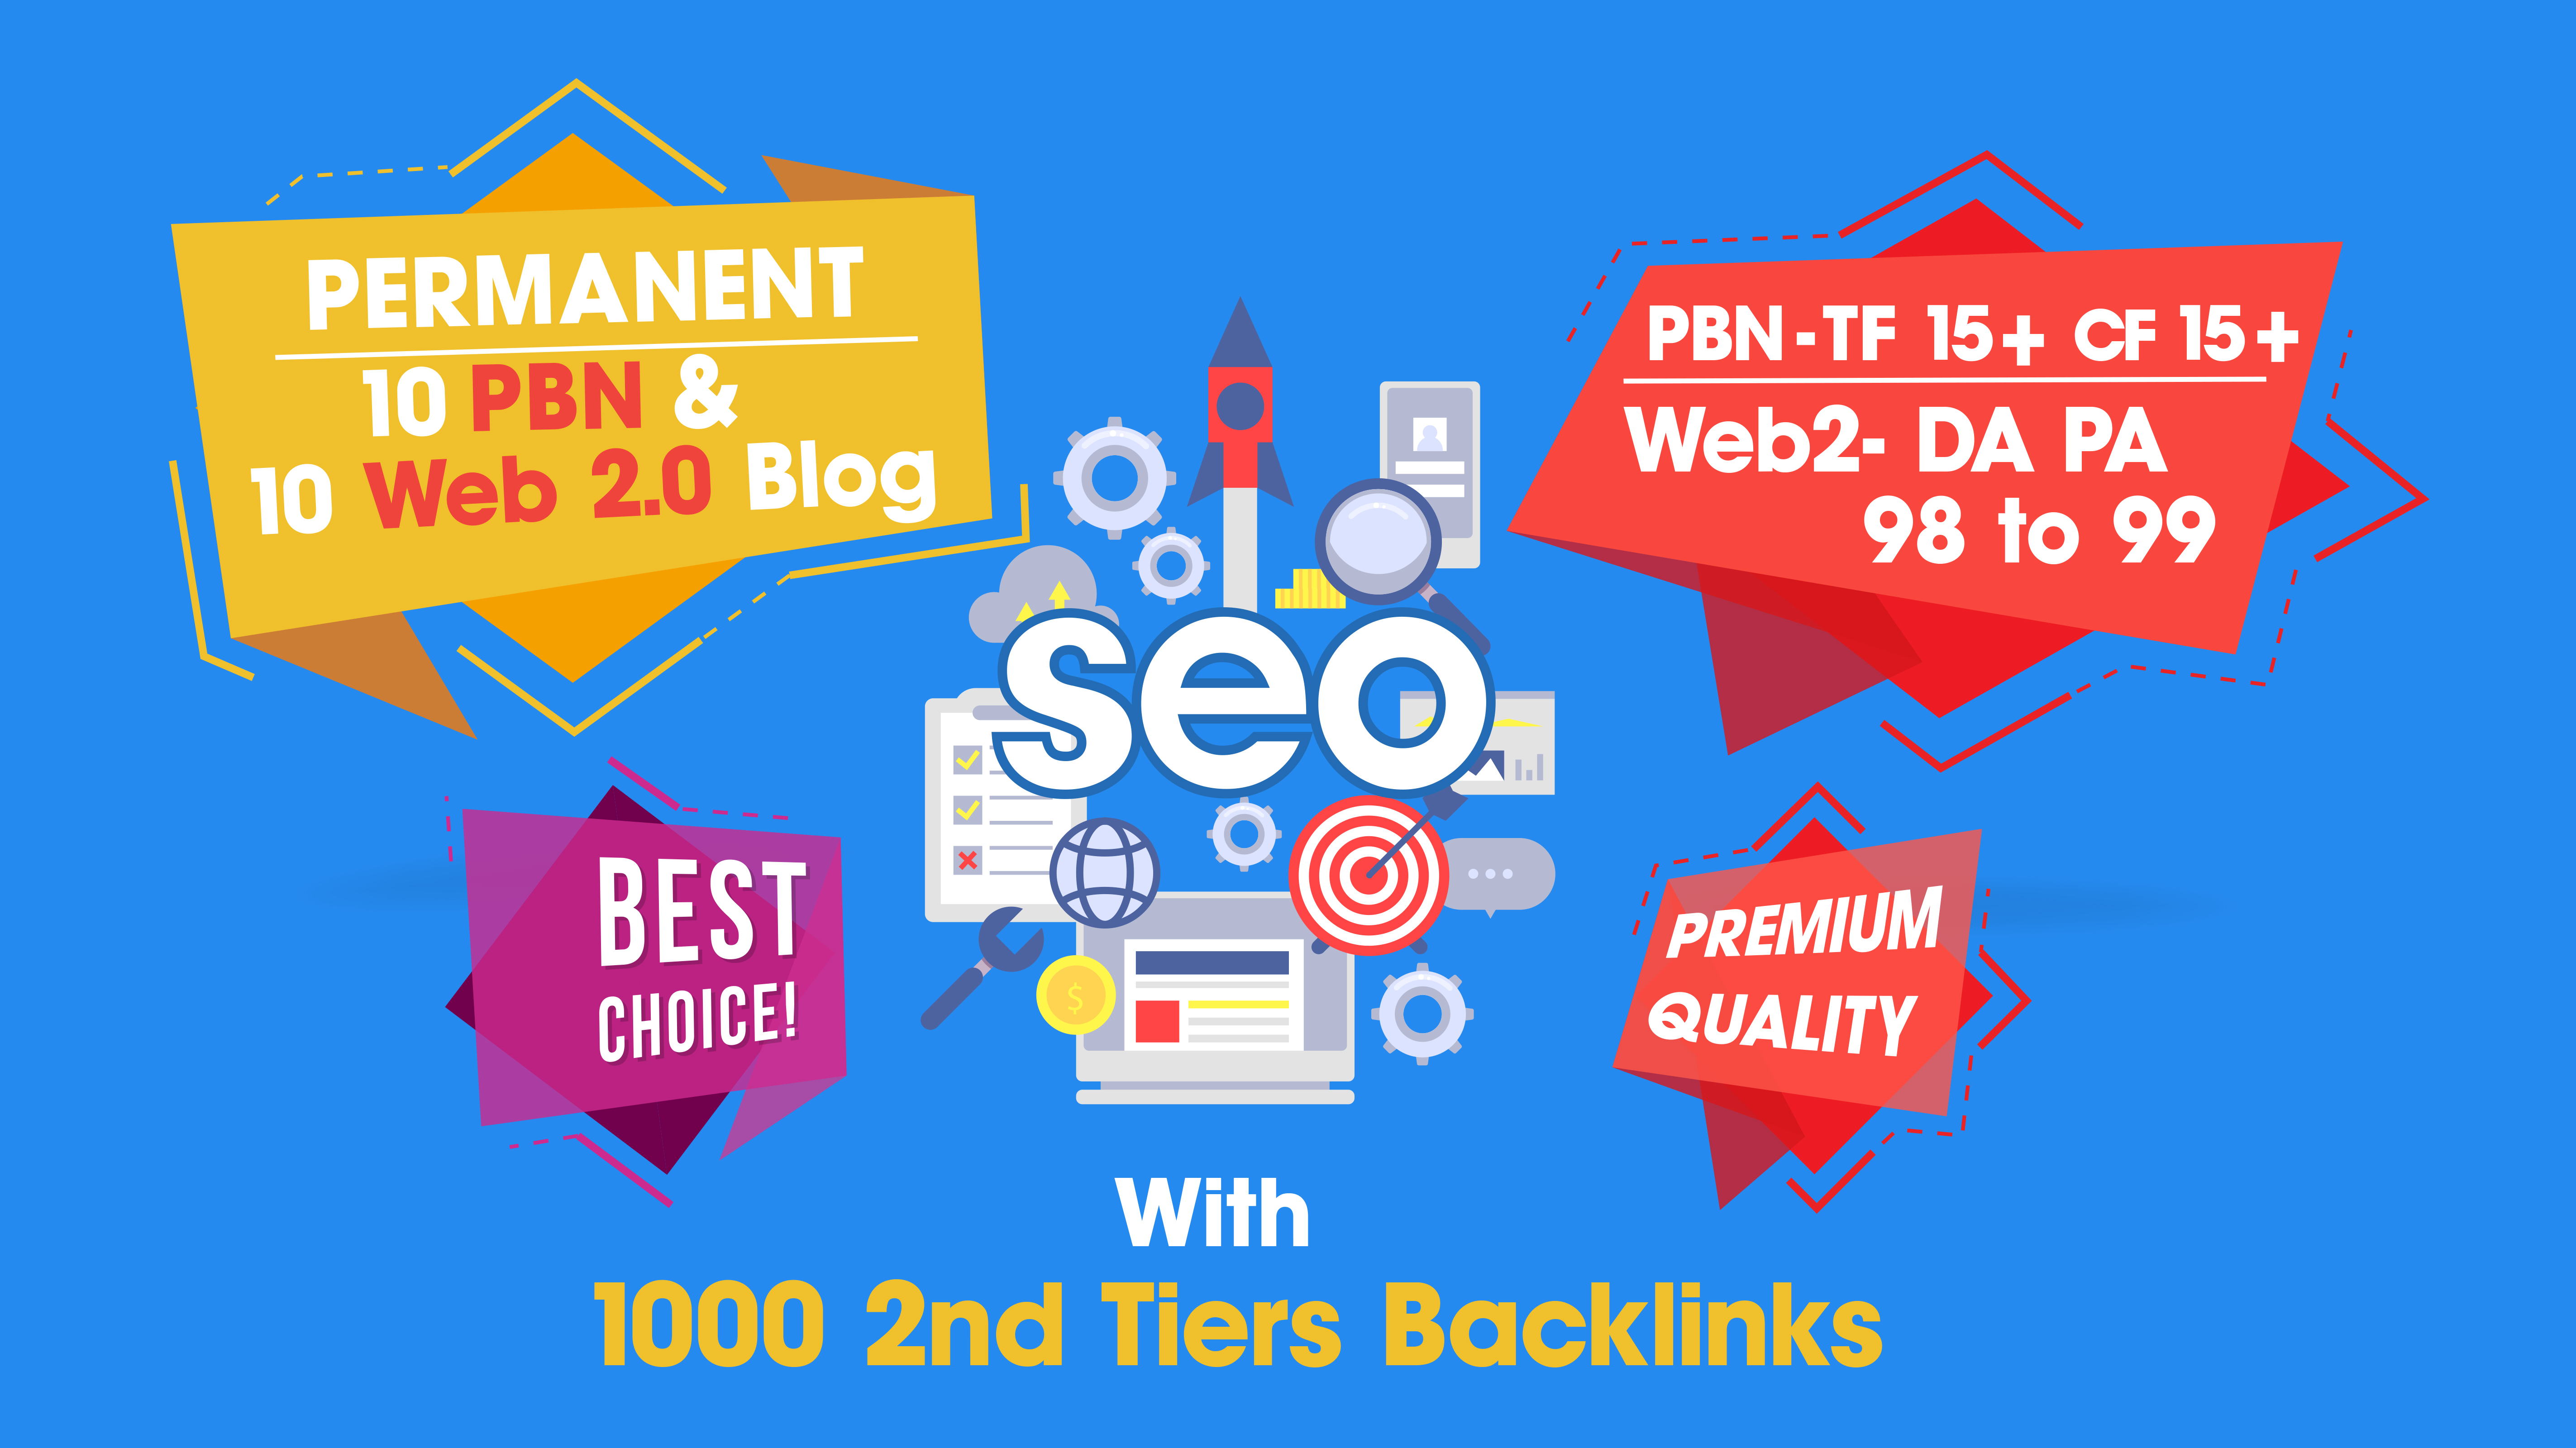 ALL IN ONE SEO Permanent 10 PBN & 10 Web 2.0 High Domain With 1000 2nd Tiers Backlinks Service